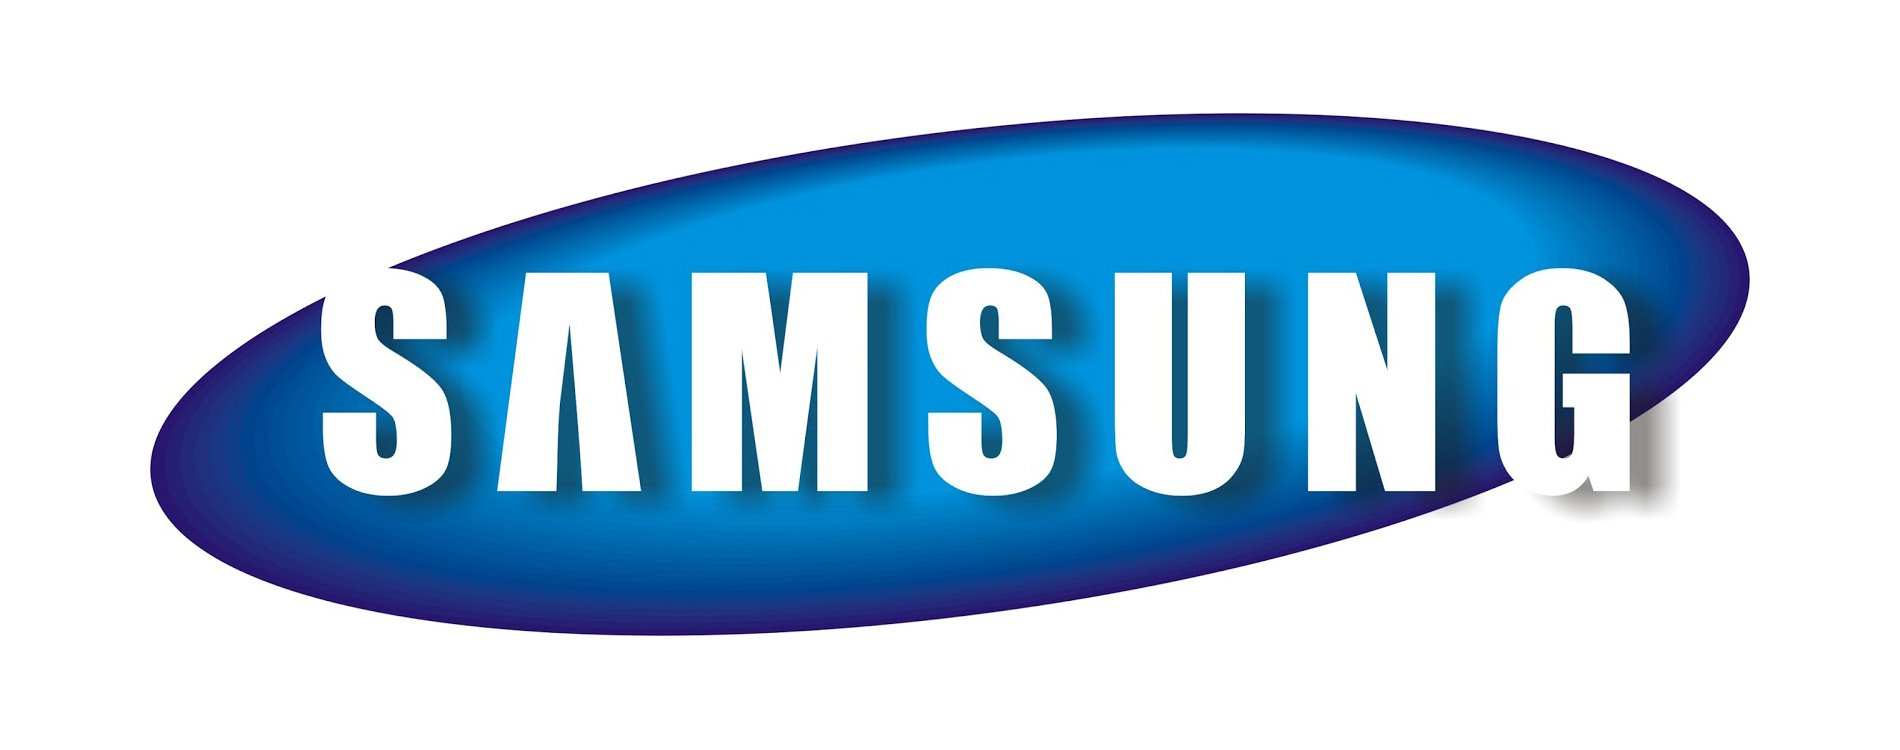 Samsung logo and symbol, meaning, history, PNG